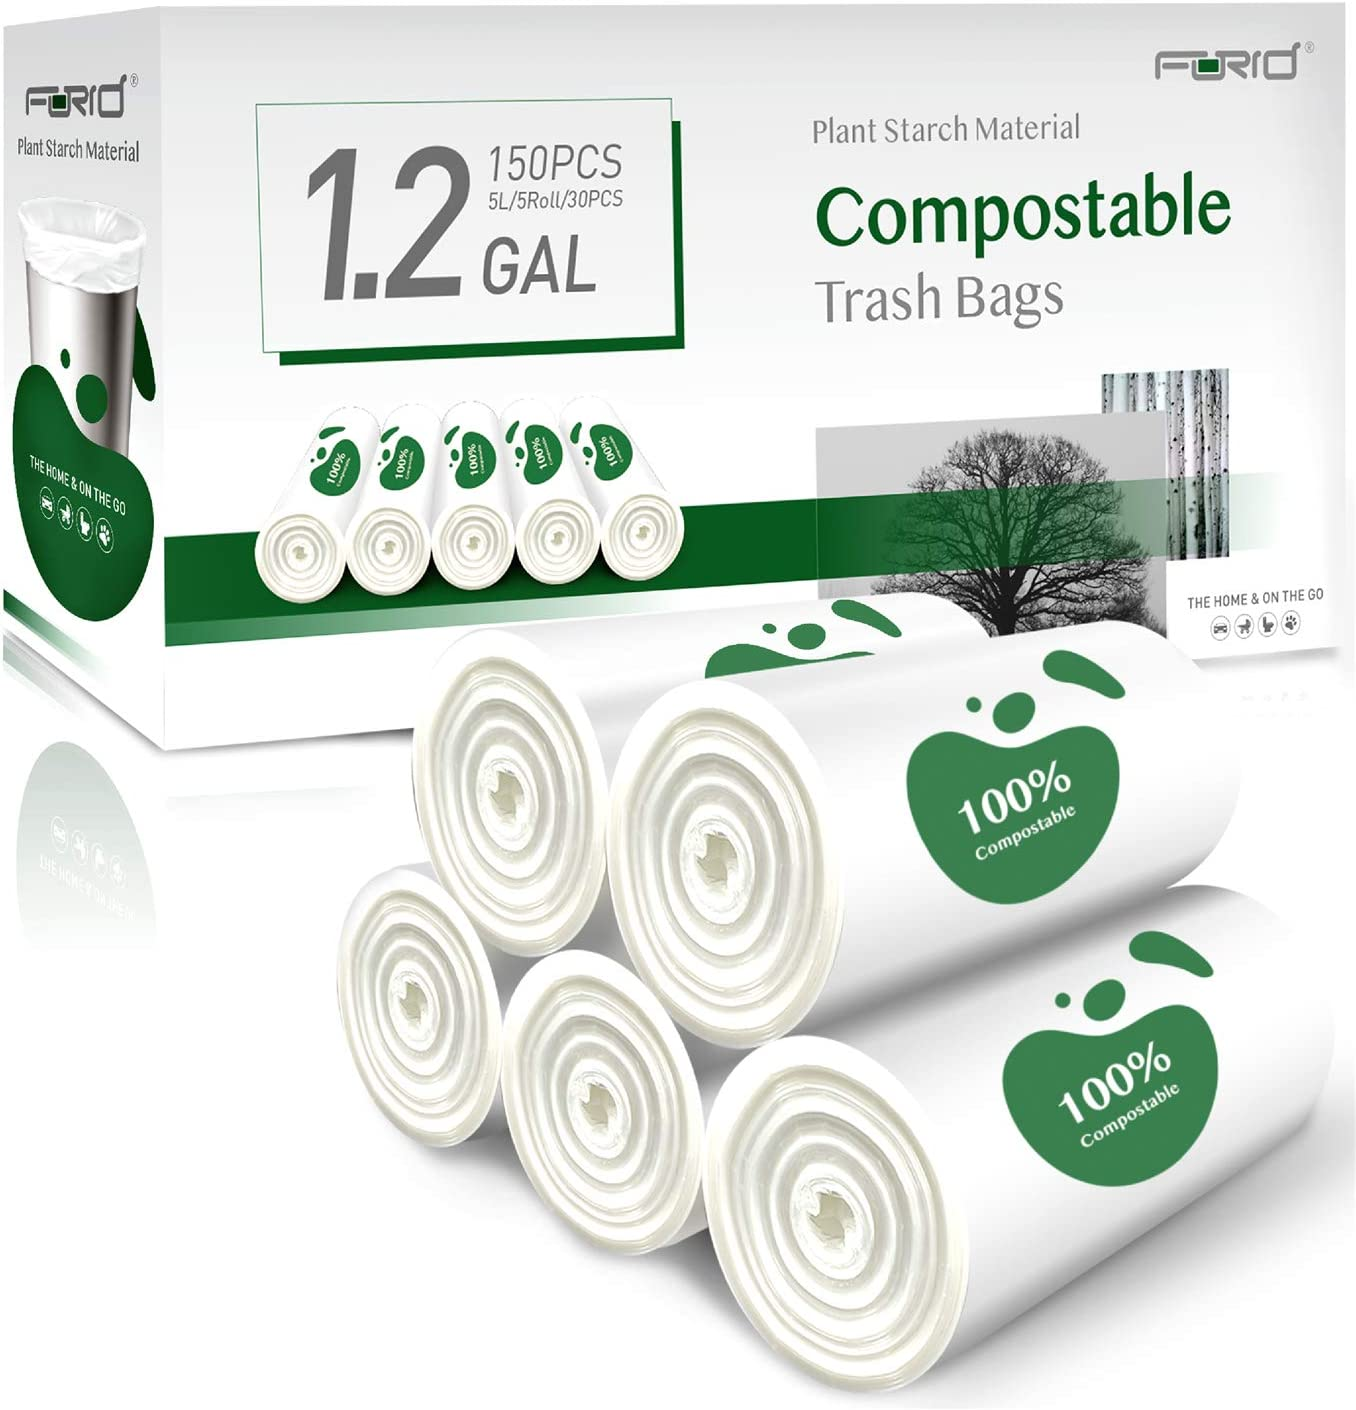 Small Trash Bags - FORID 1.2 Gallon Strong Compostable Garbage Bags 150 Count Mini Trash Can Liners 5 Liter Unscented Wastebasket Garbage Bags for Bathroom Kitchen Home Office (5Rolls/White)